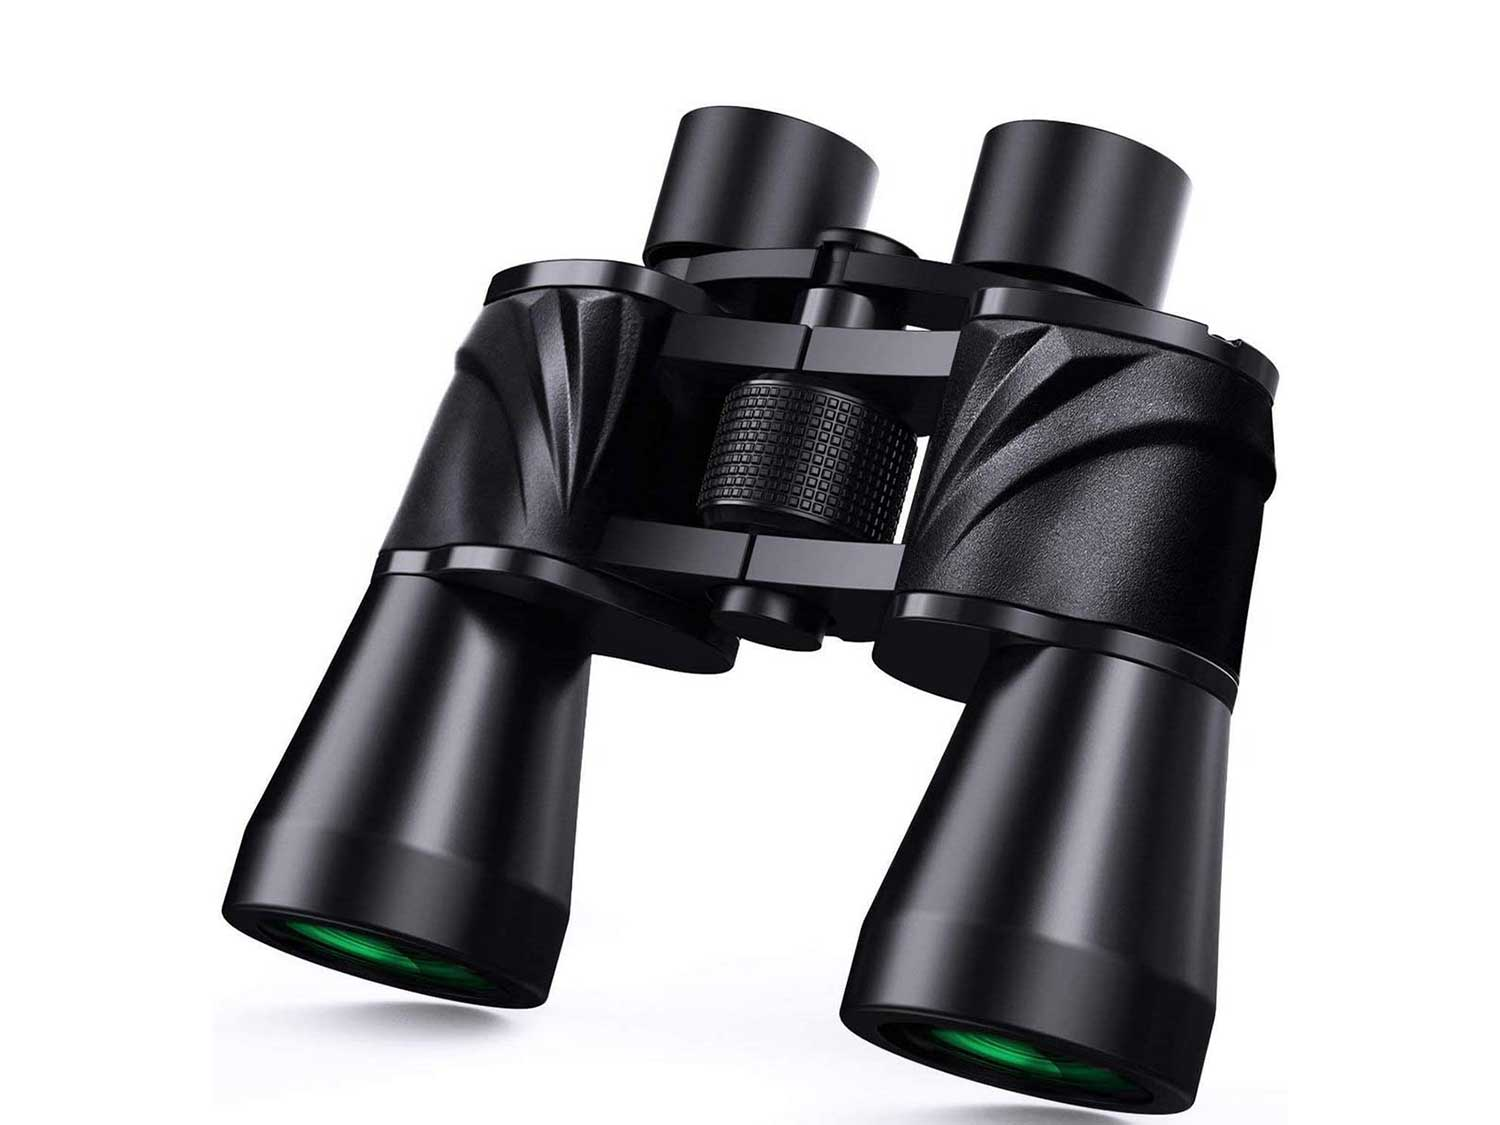 10x50 Powerful Binoculars for Adults with Low Light Night Vision, Large Eyepiece, 10 Seconds Quick Focus, Waterproof Wide Angle Compact-Binoculars-for-Adults-Bird-Watching, Hunting, Concerts